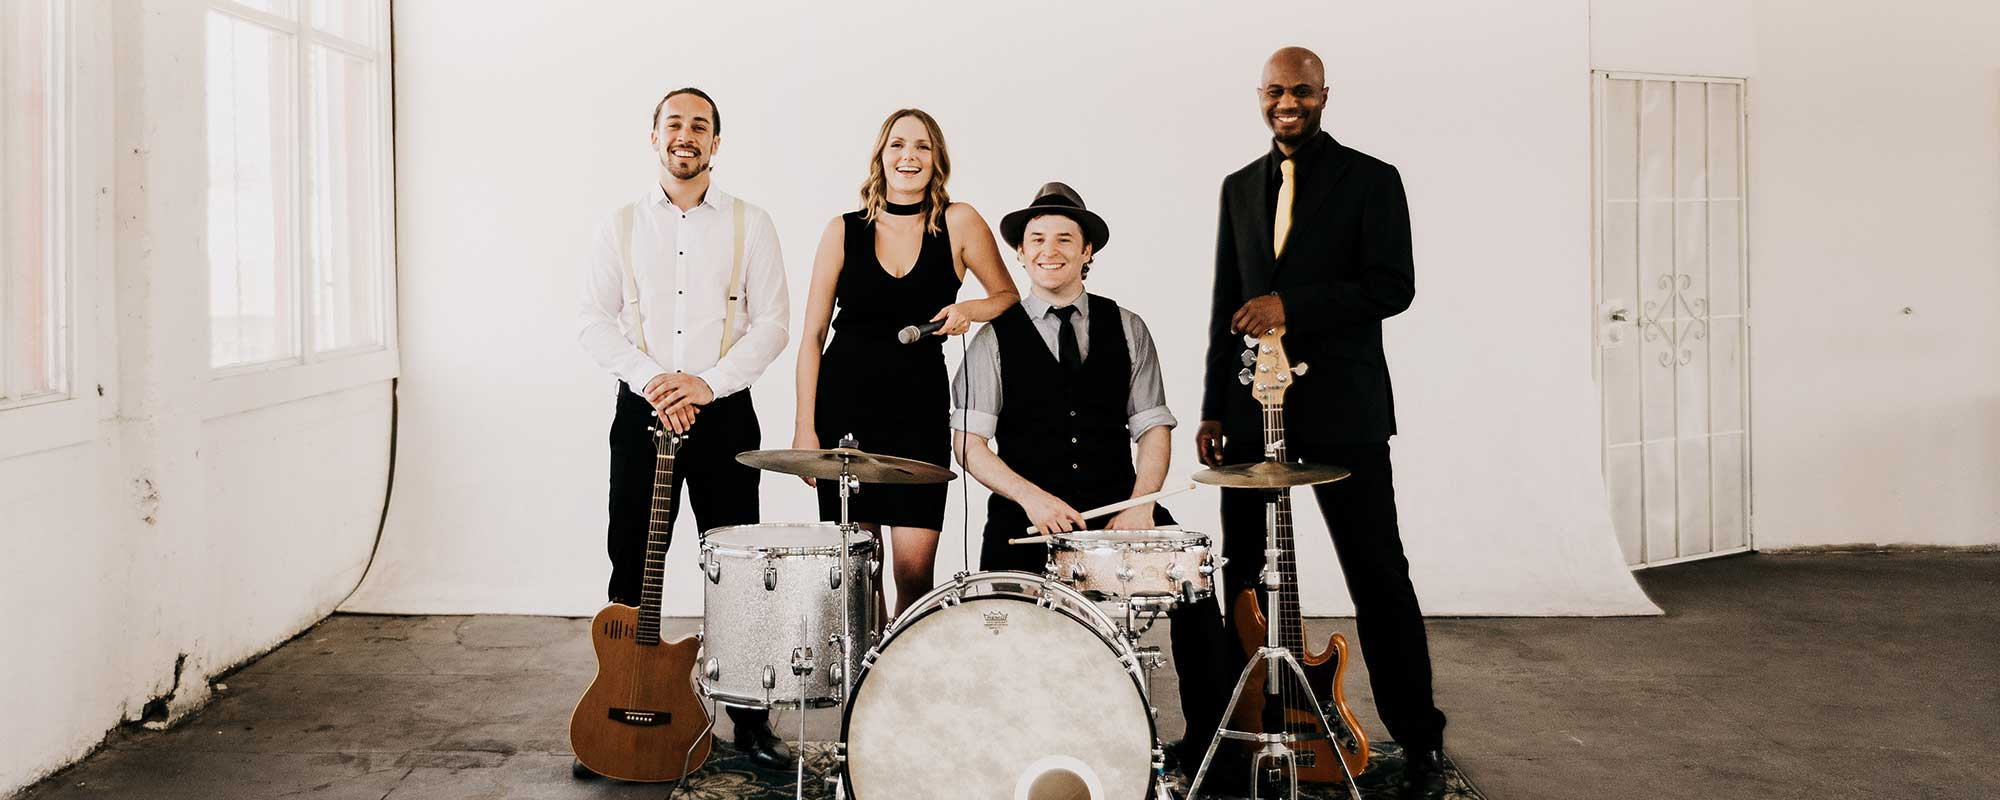 High Energy Live Music For Weddings Amp Corporate Events